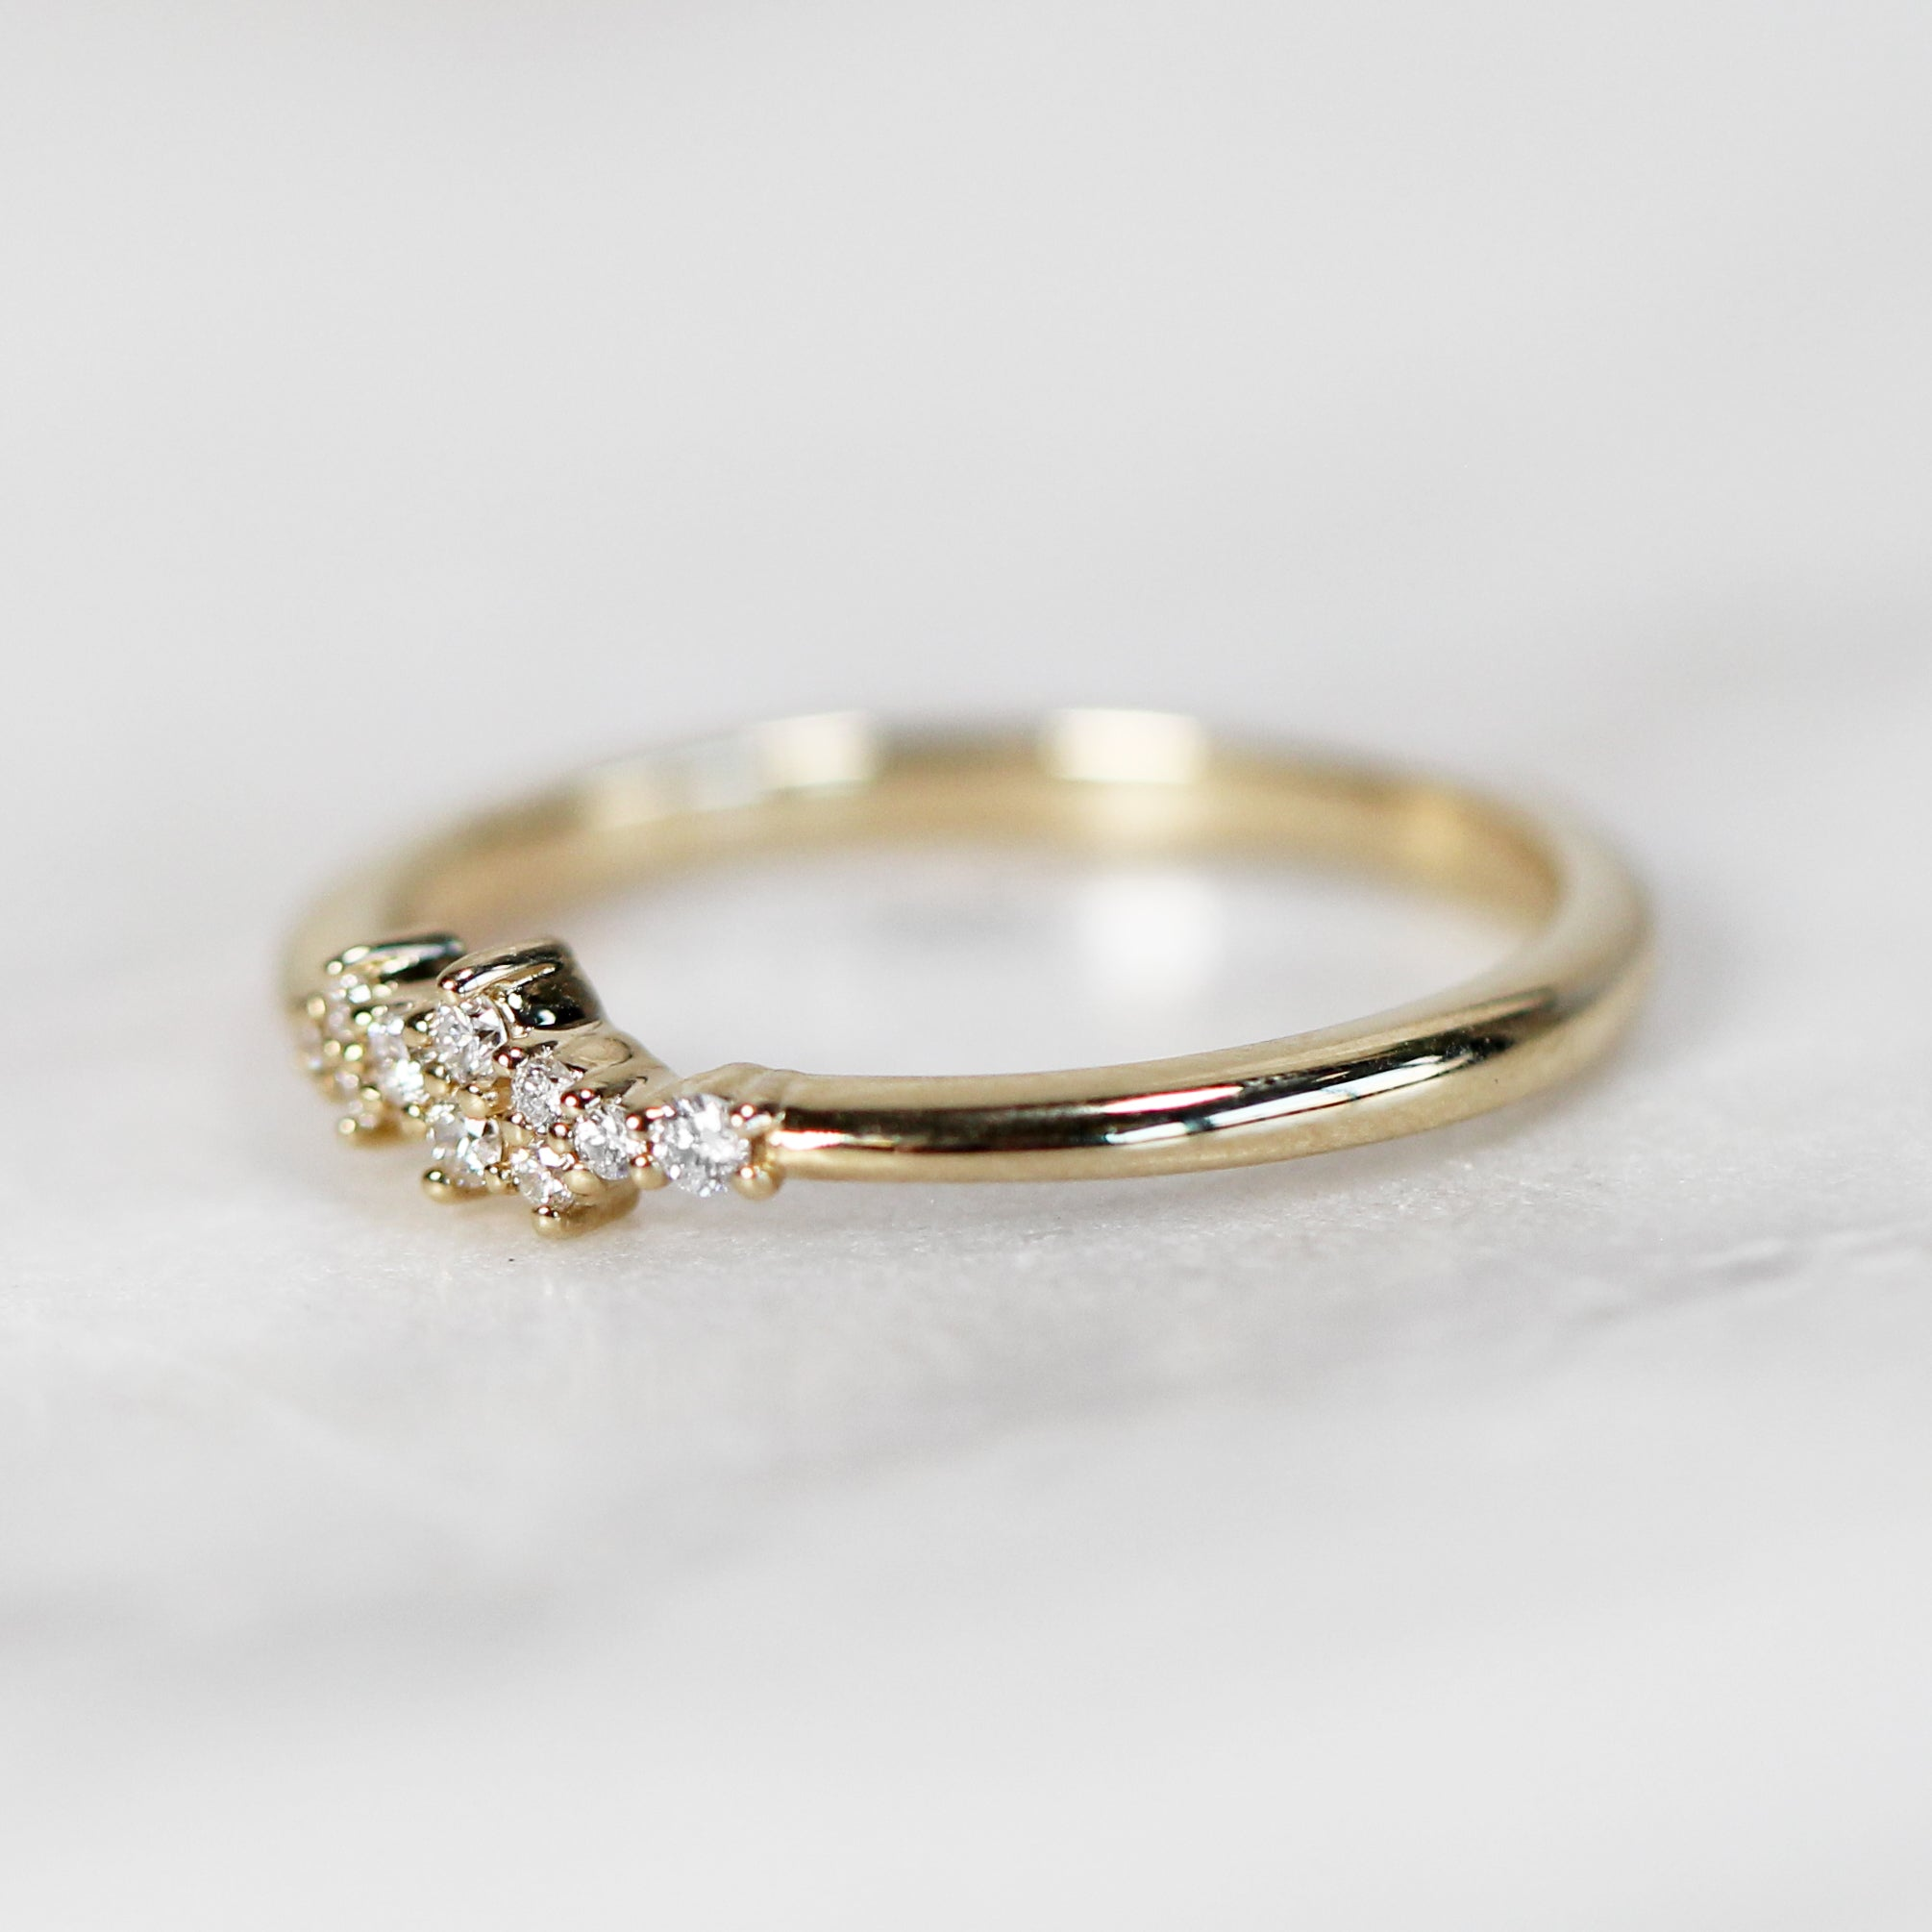 Fiona - Cluster style diamond band - Celestial Diamonds ® by Midwinter Co.